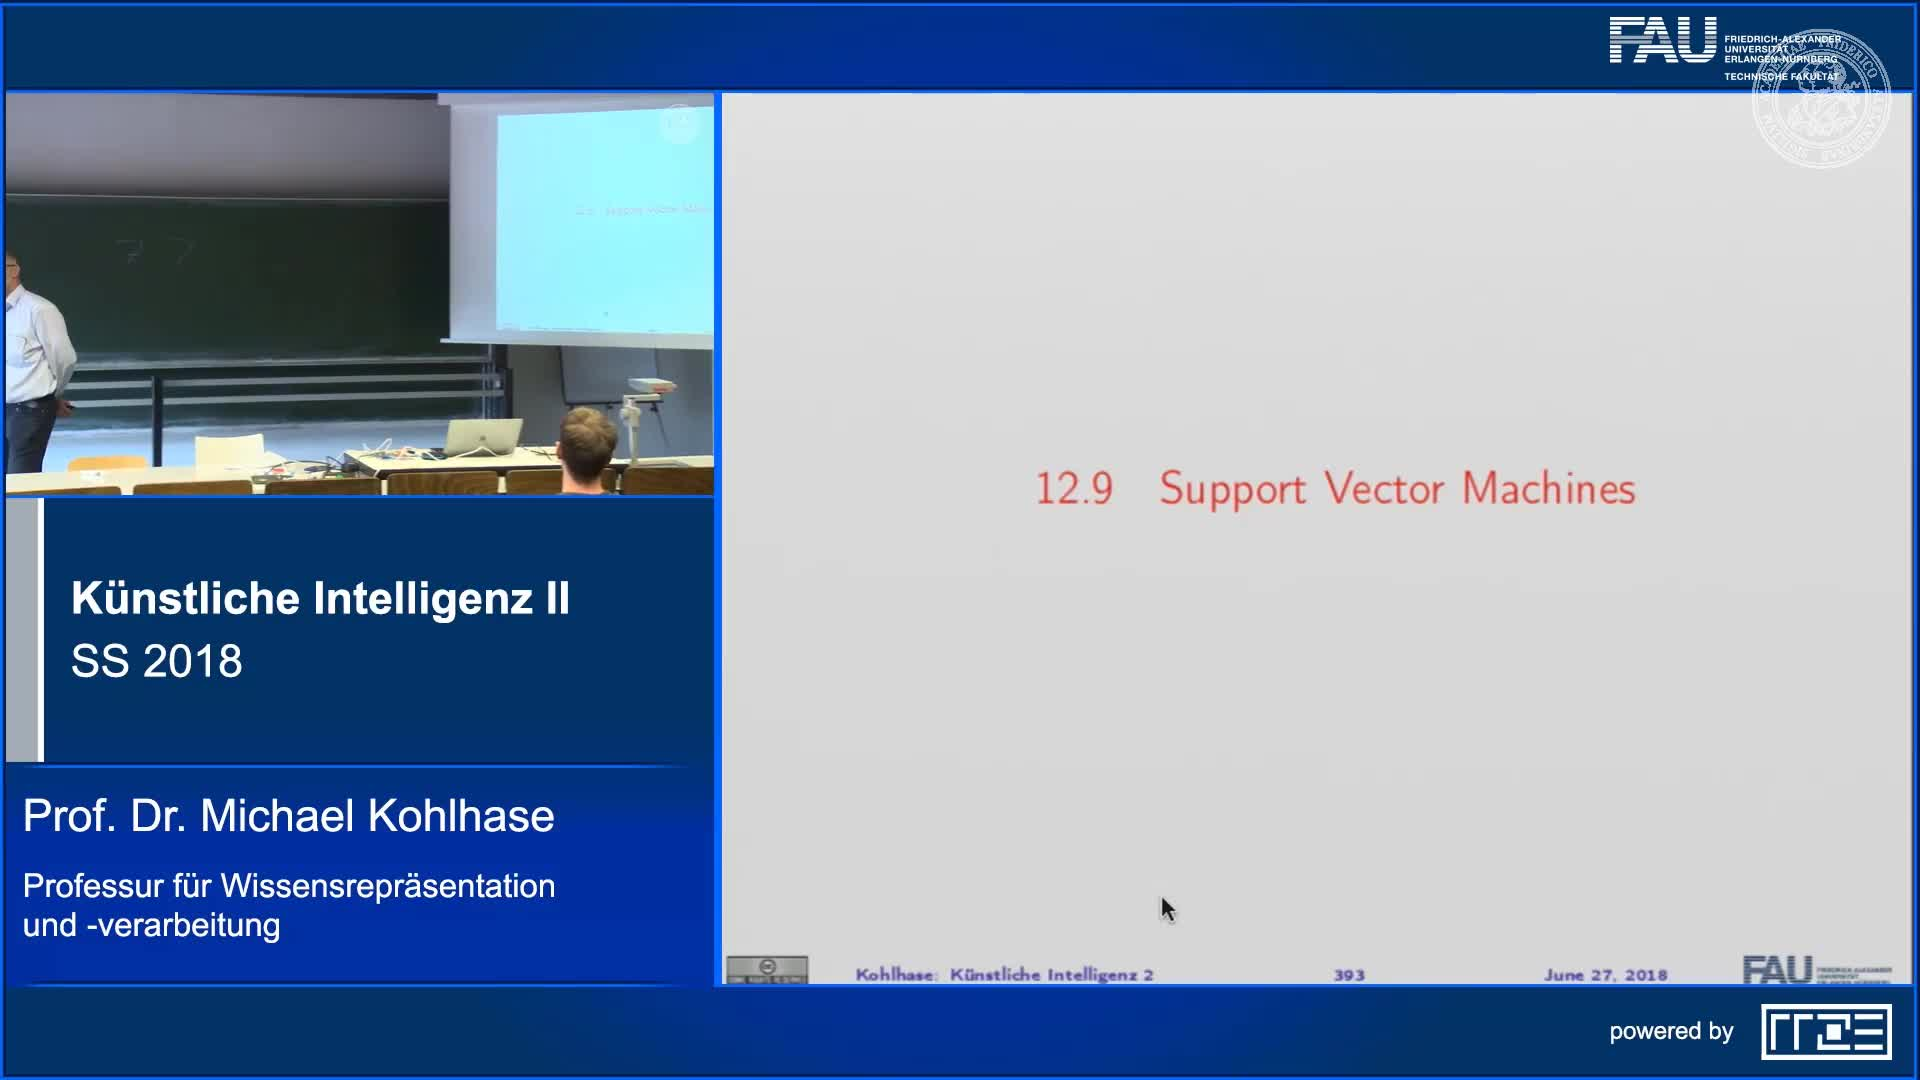 25.9. Support Vector Machines preview image